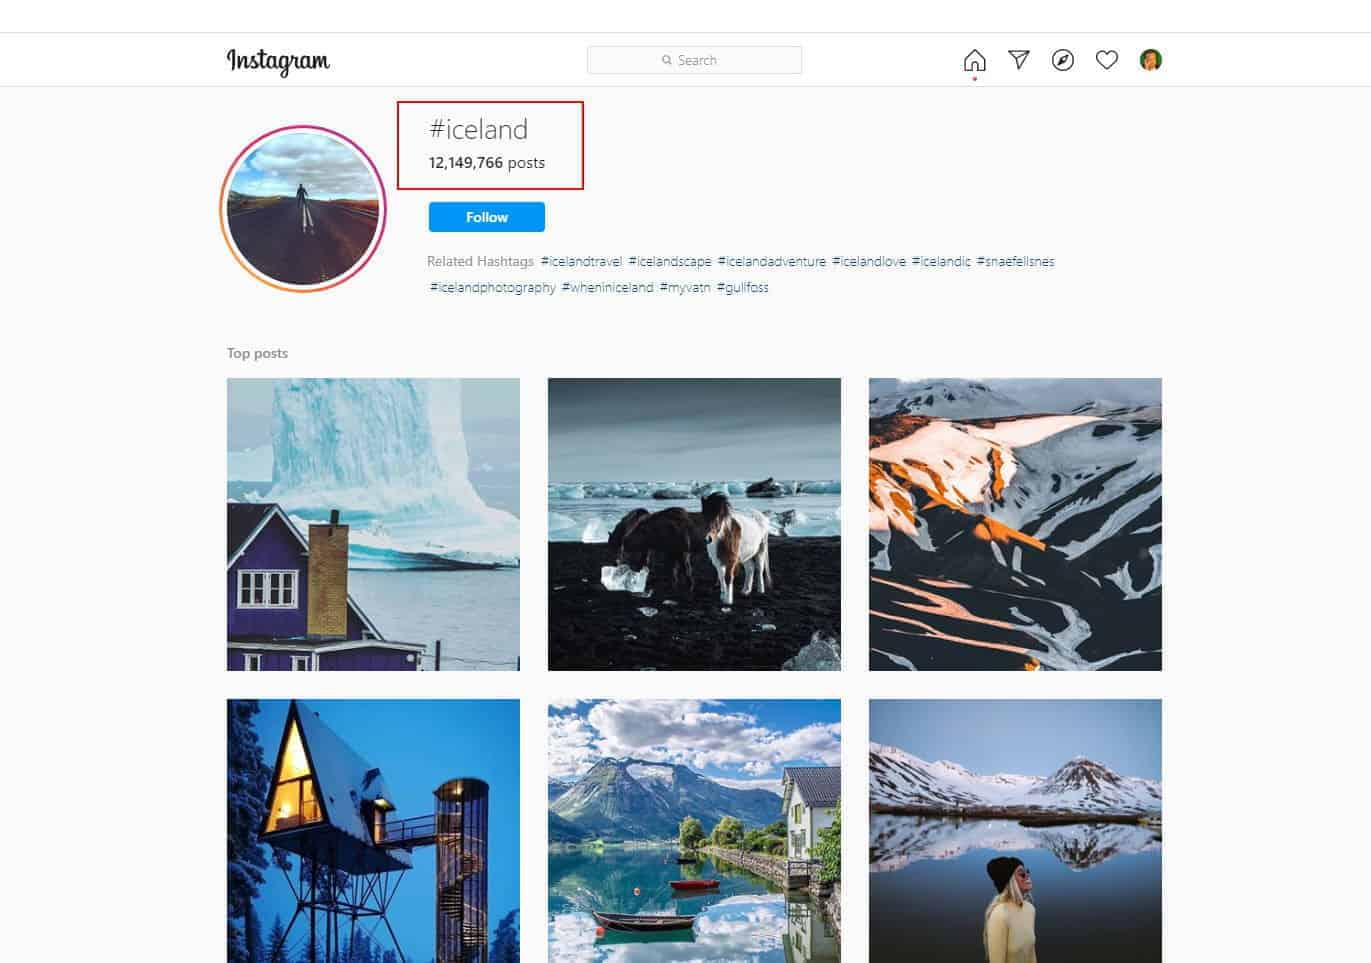 The #iceland hashtag on Instagram has more than 12 million photos that have used it.